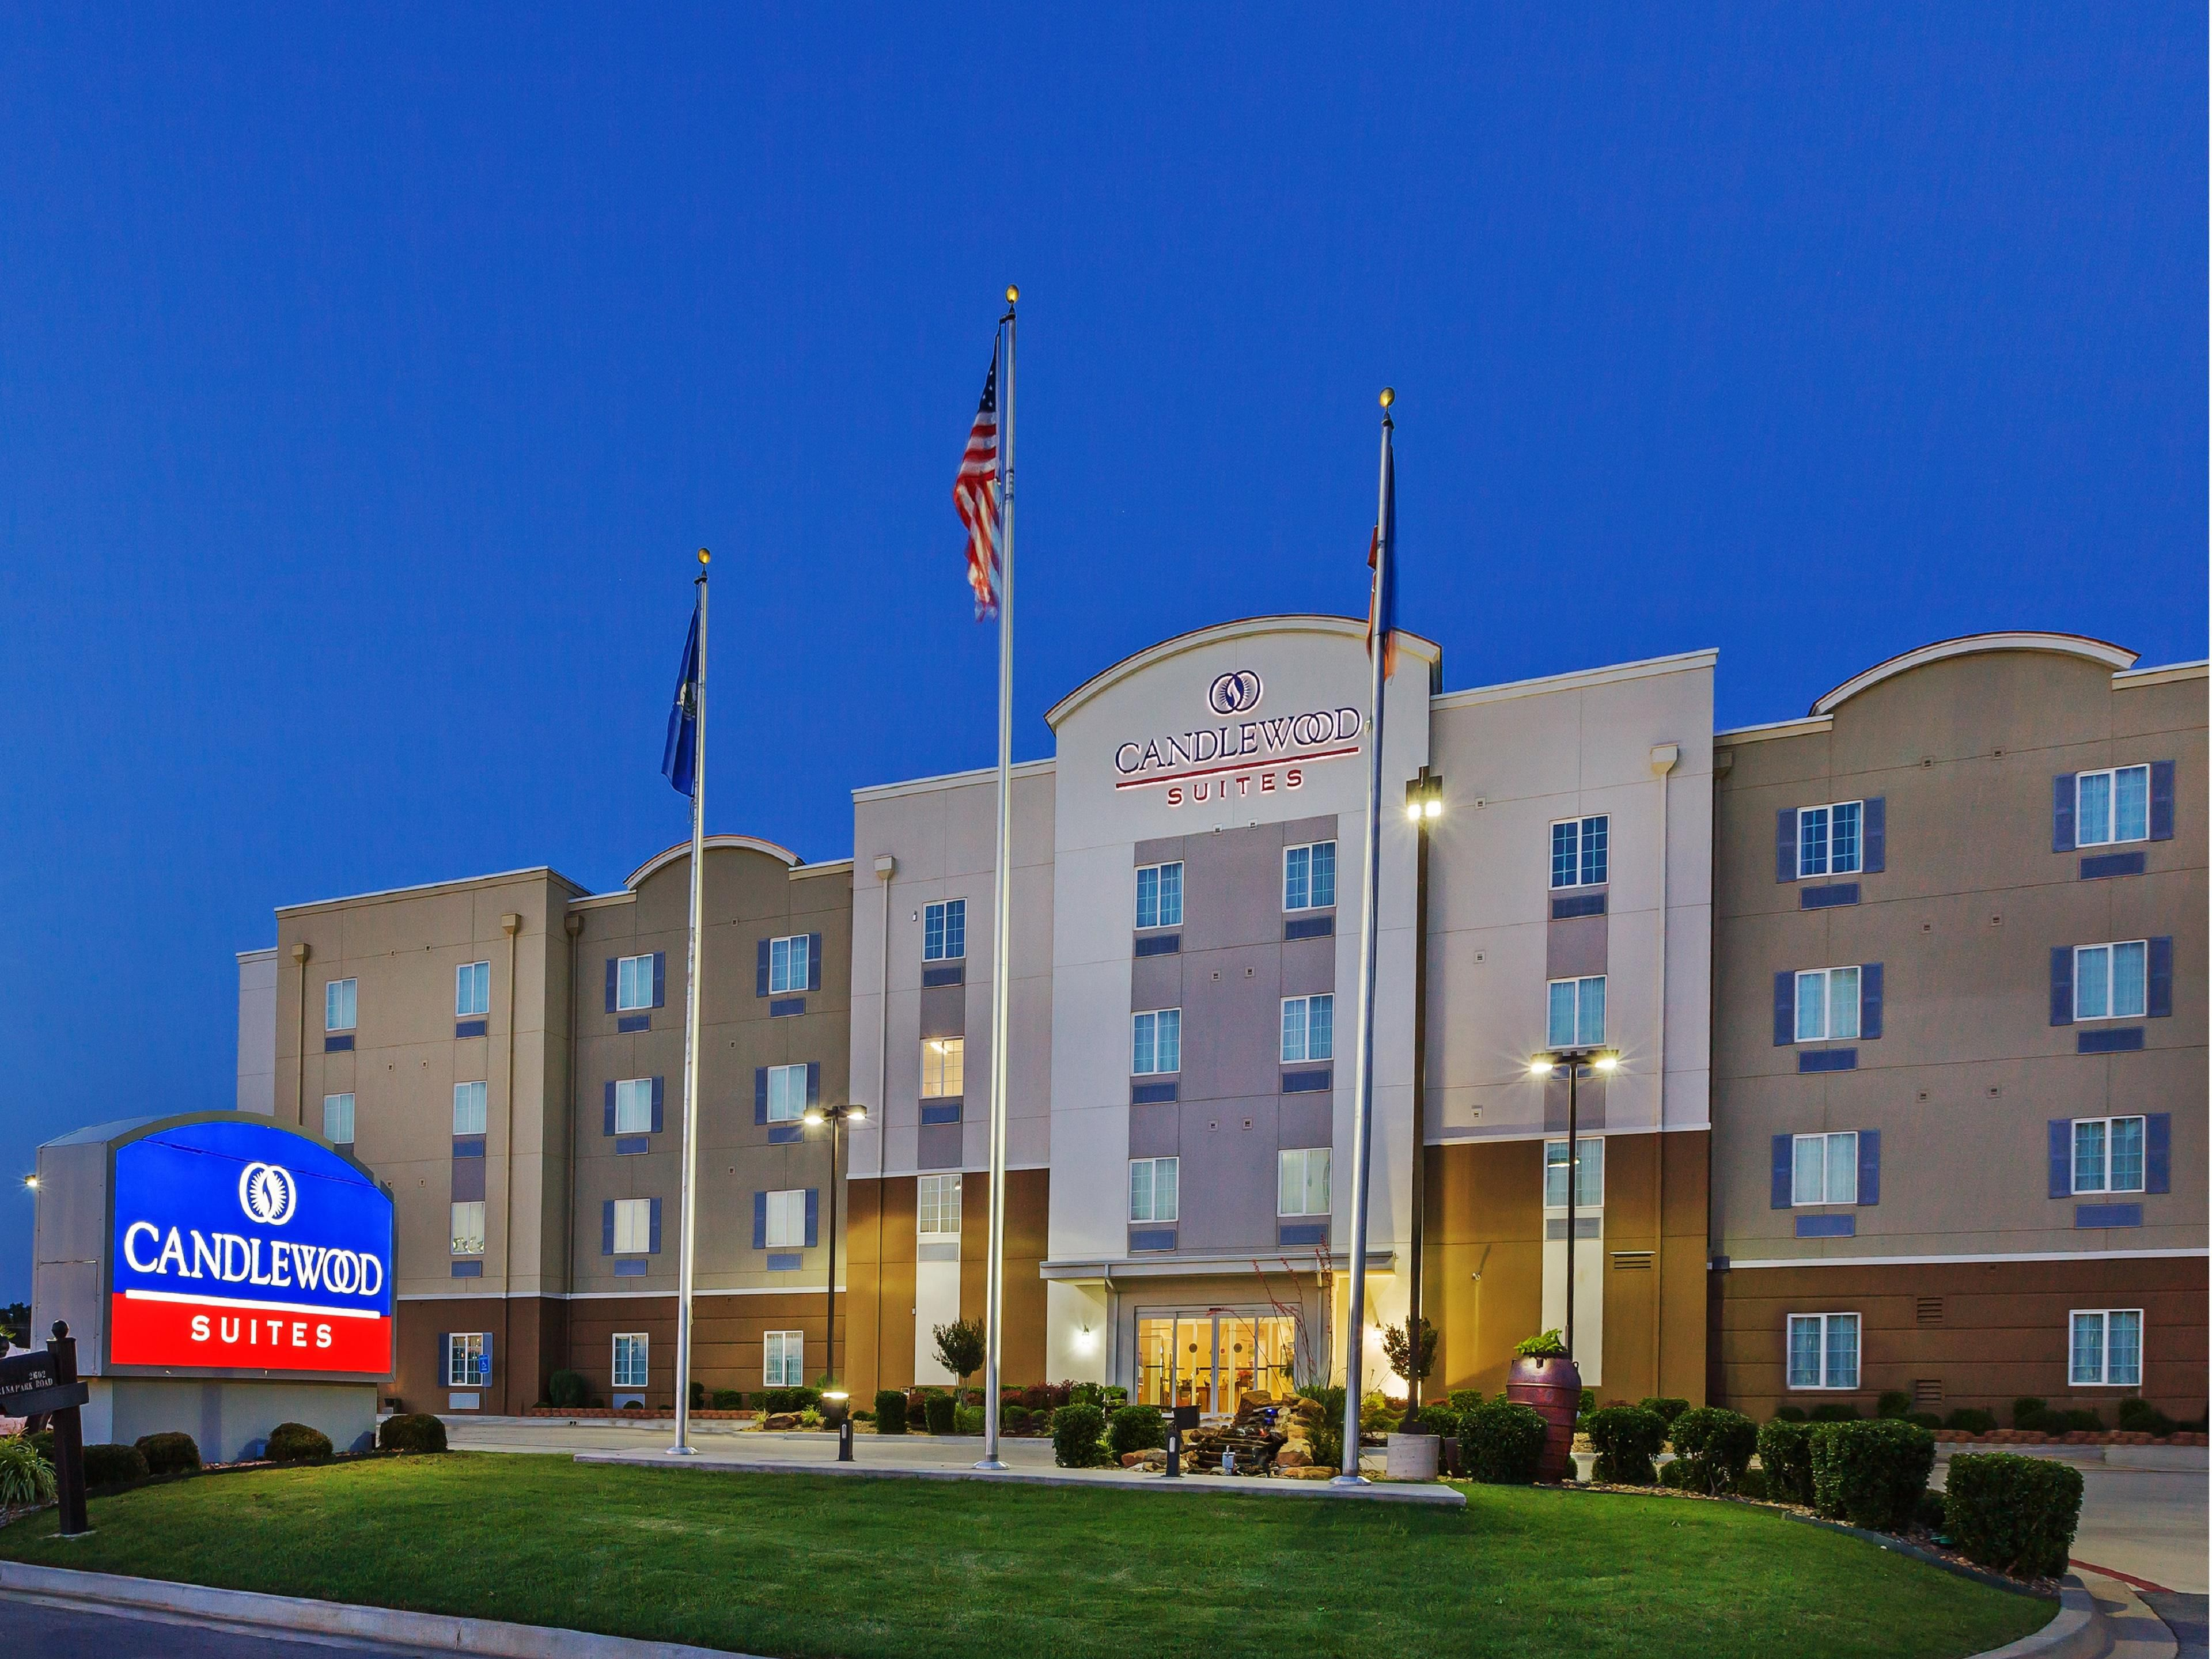 Ardmore Hotels Candlewood Suites Extended Stay Hotel In Oklahoma